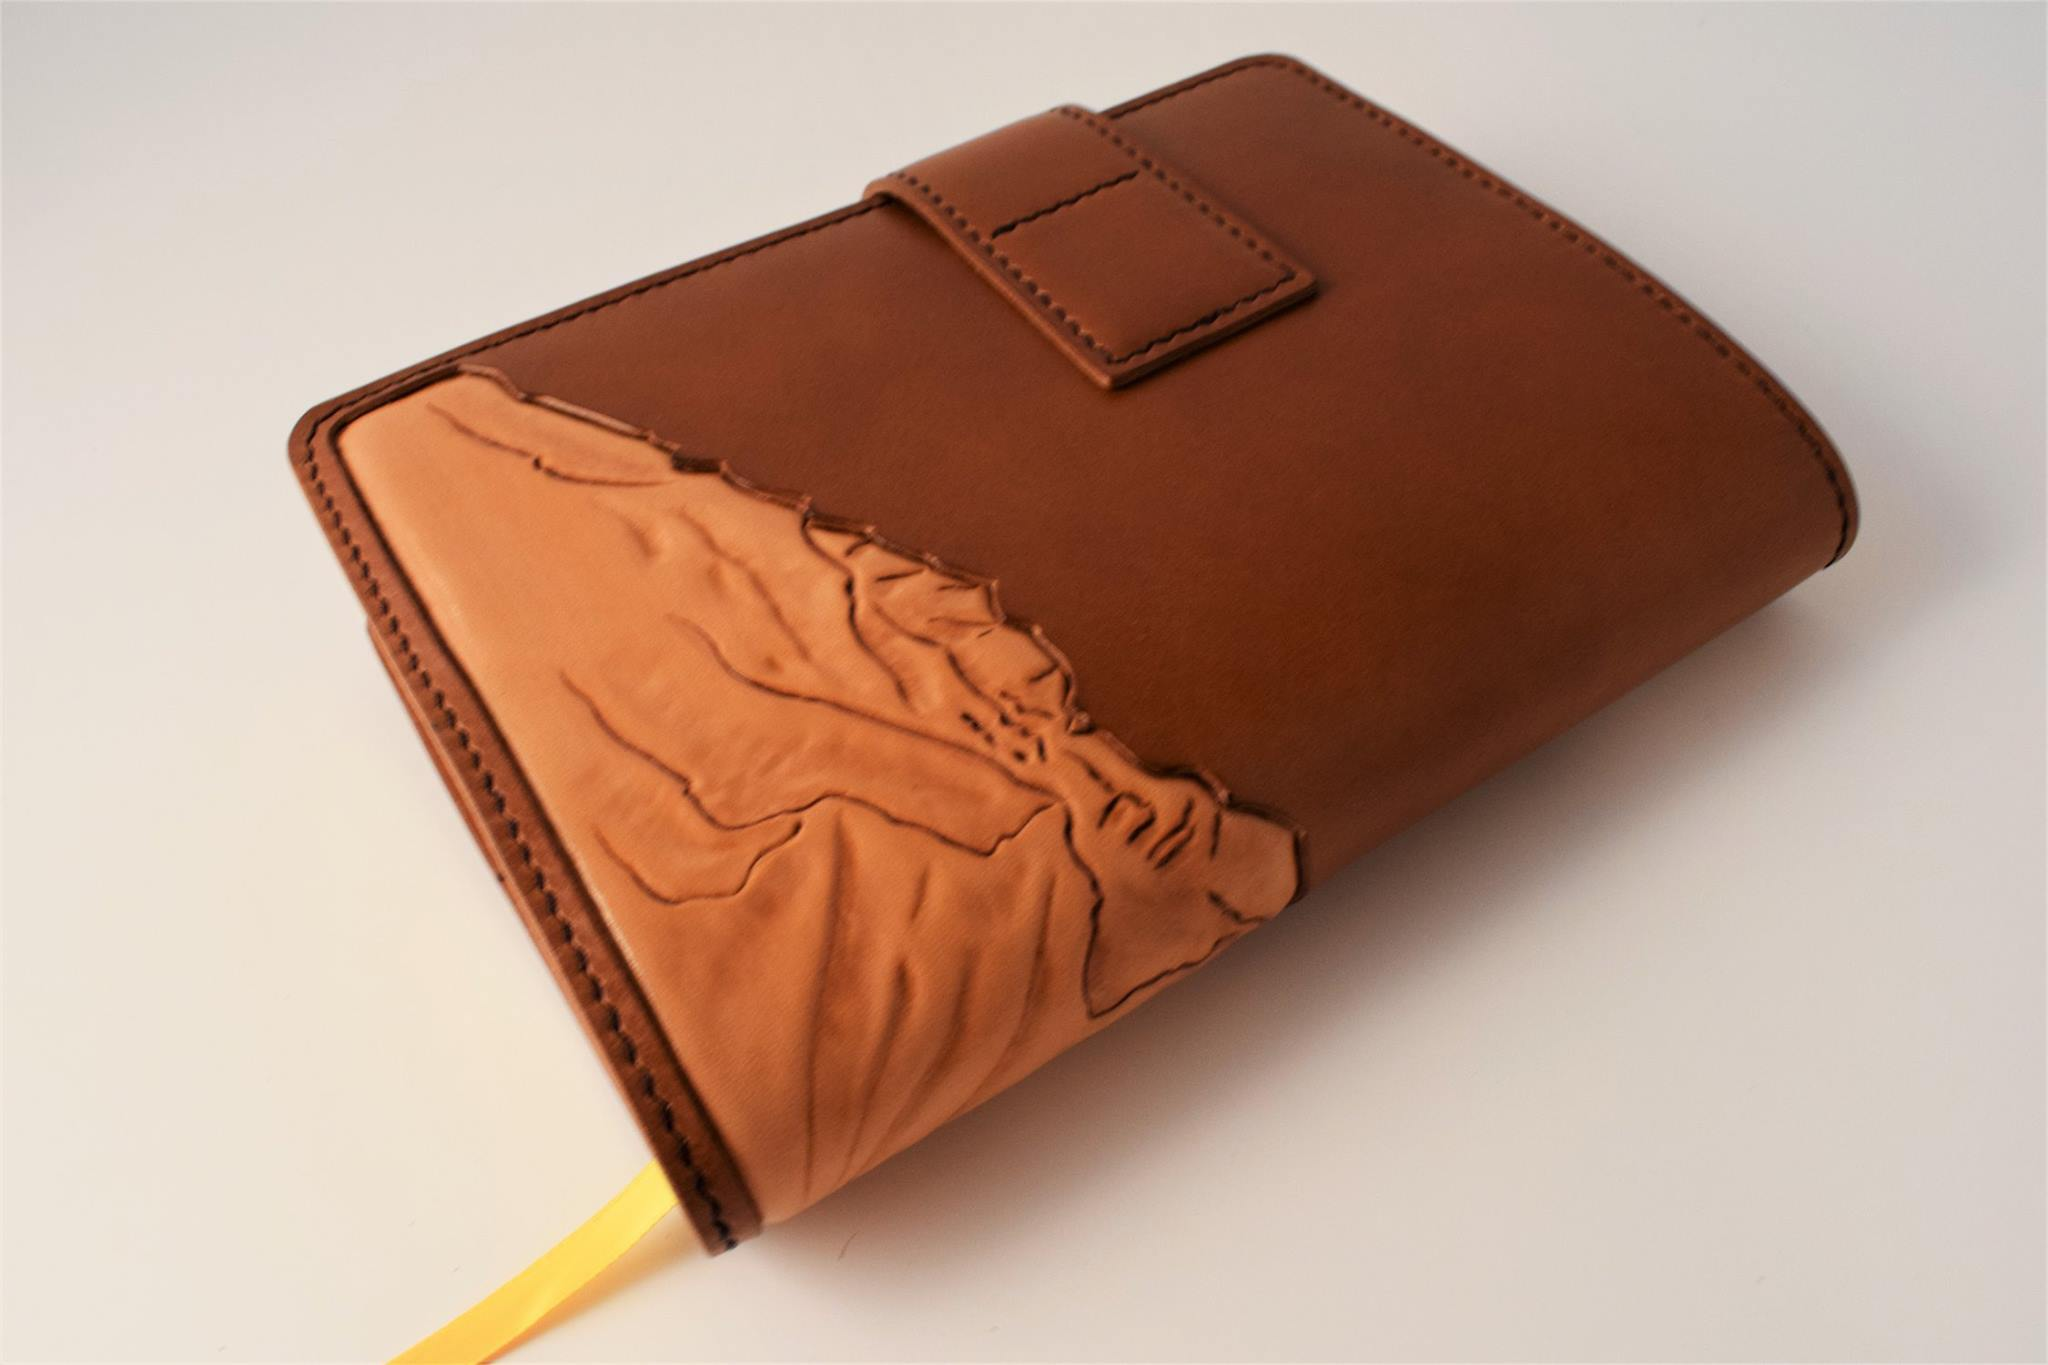 Custom Refillable Journal Cover with Mountainscape Inlay